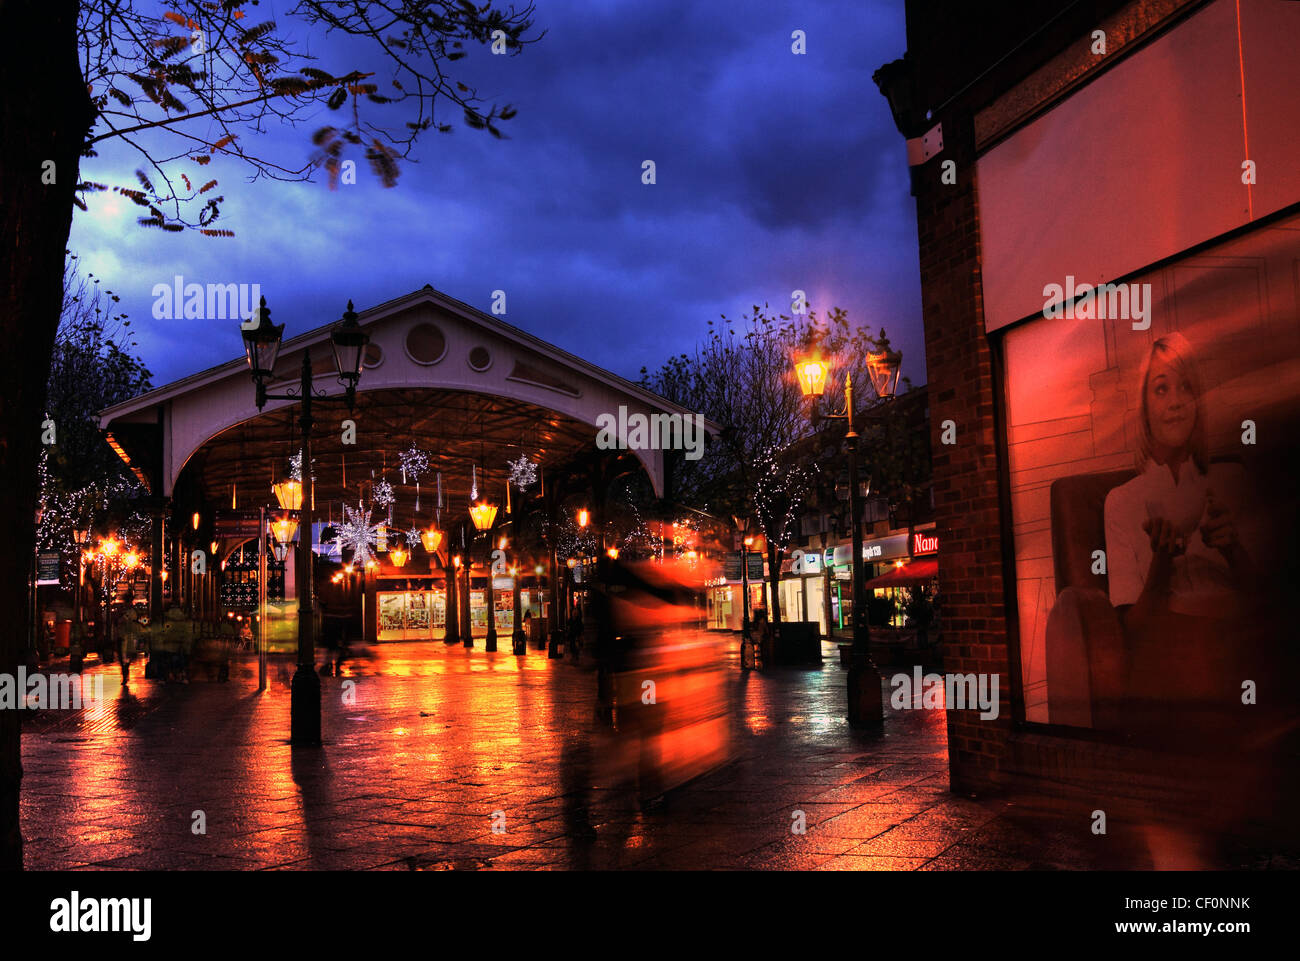 Dusk at Old Fish Market, Golden Square Marketplace, Warrington, Cheshire , UK - Stock Image